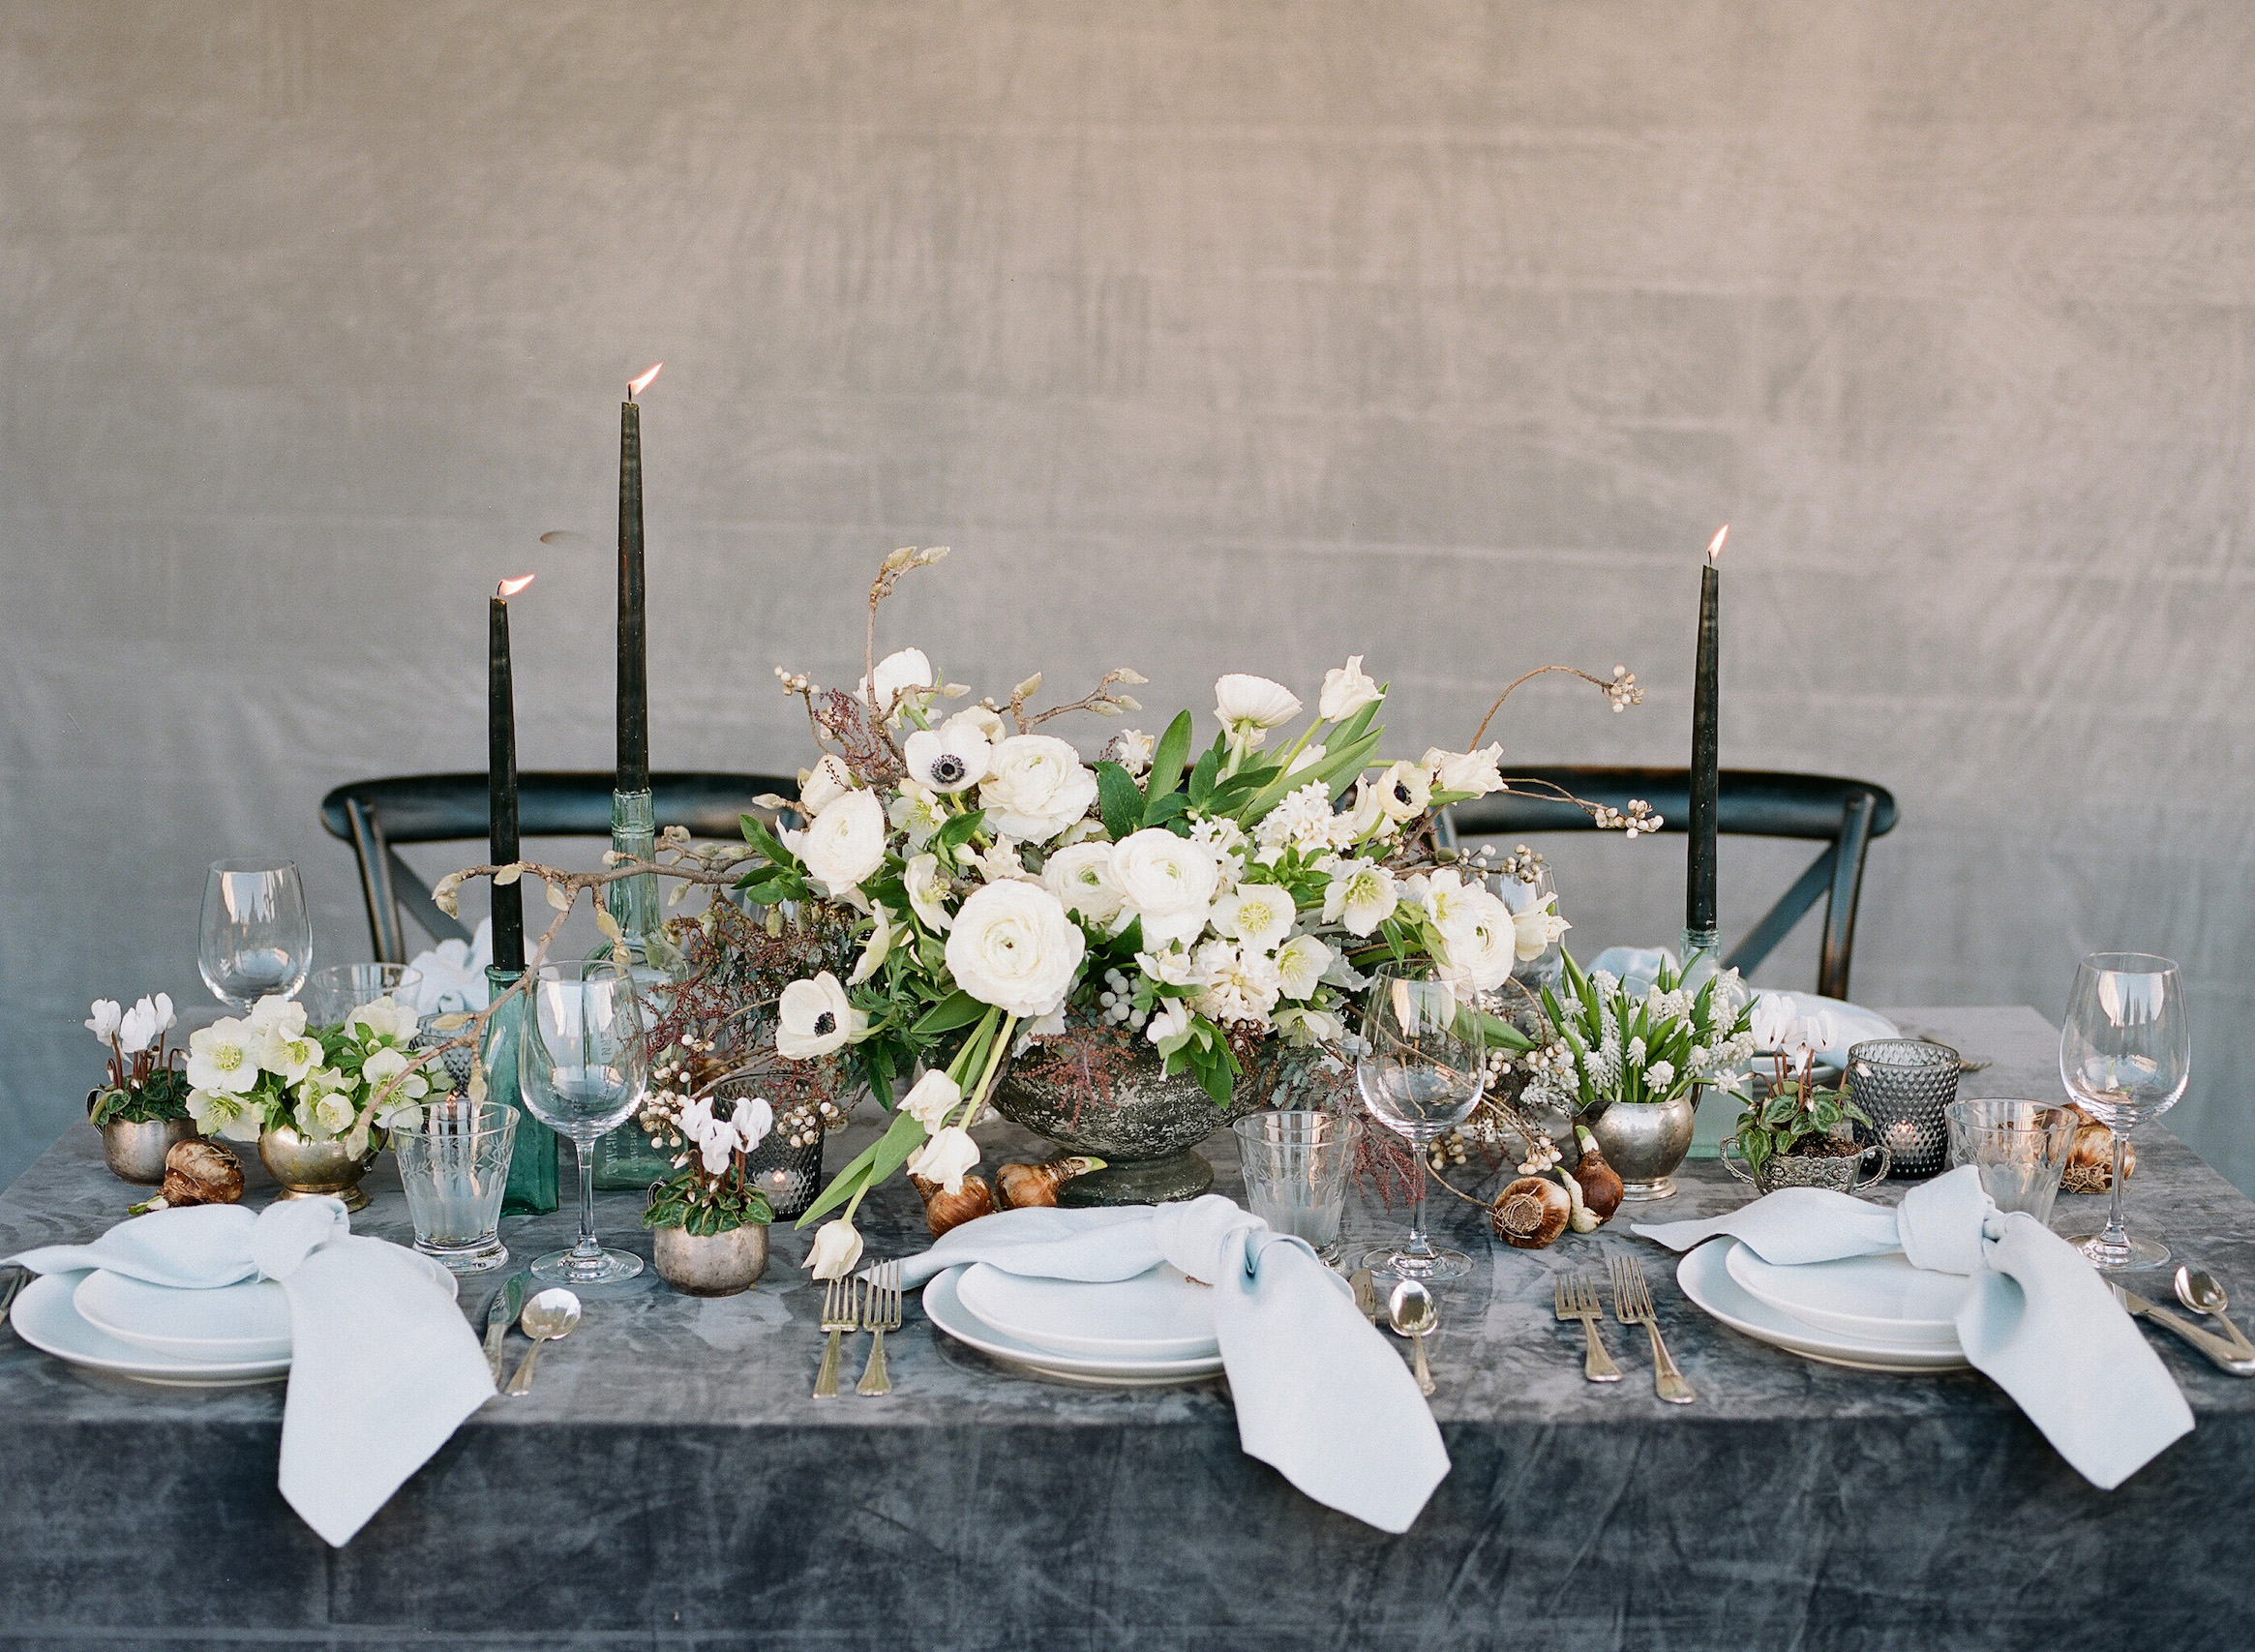 dress your table style tavola fine linen velvet charcoal anna potted planet christina mcneill graphy copy accent focus runner with from target patio coffee green marble top piece